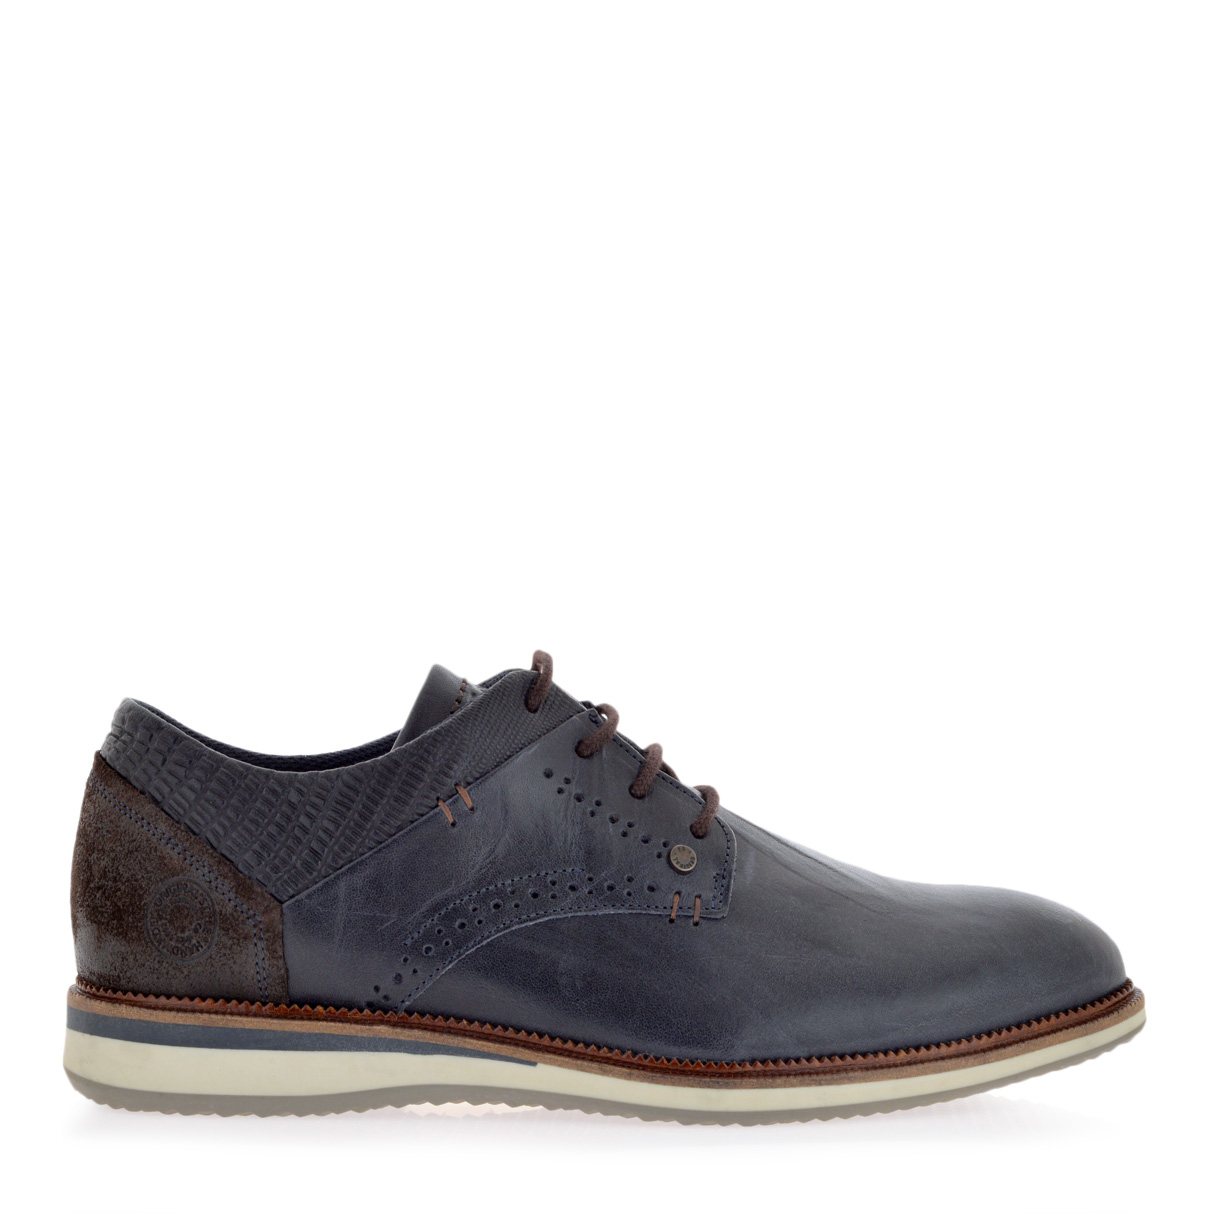 LACE-UP SHOES σχέδιο: G57754621 outlet   ανδρικα   lace up shoes